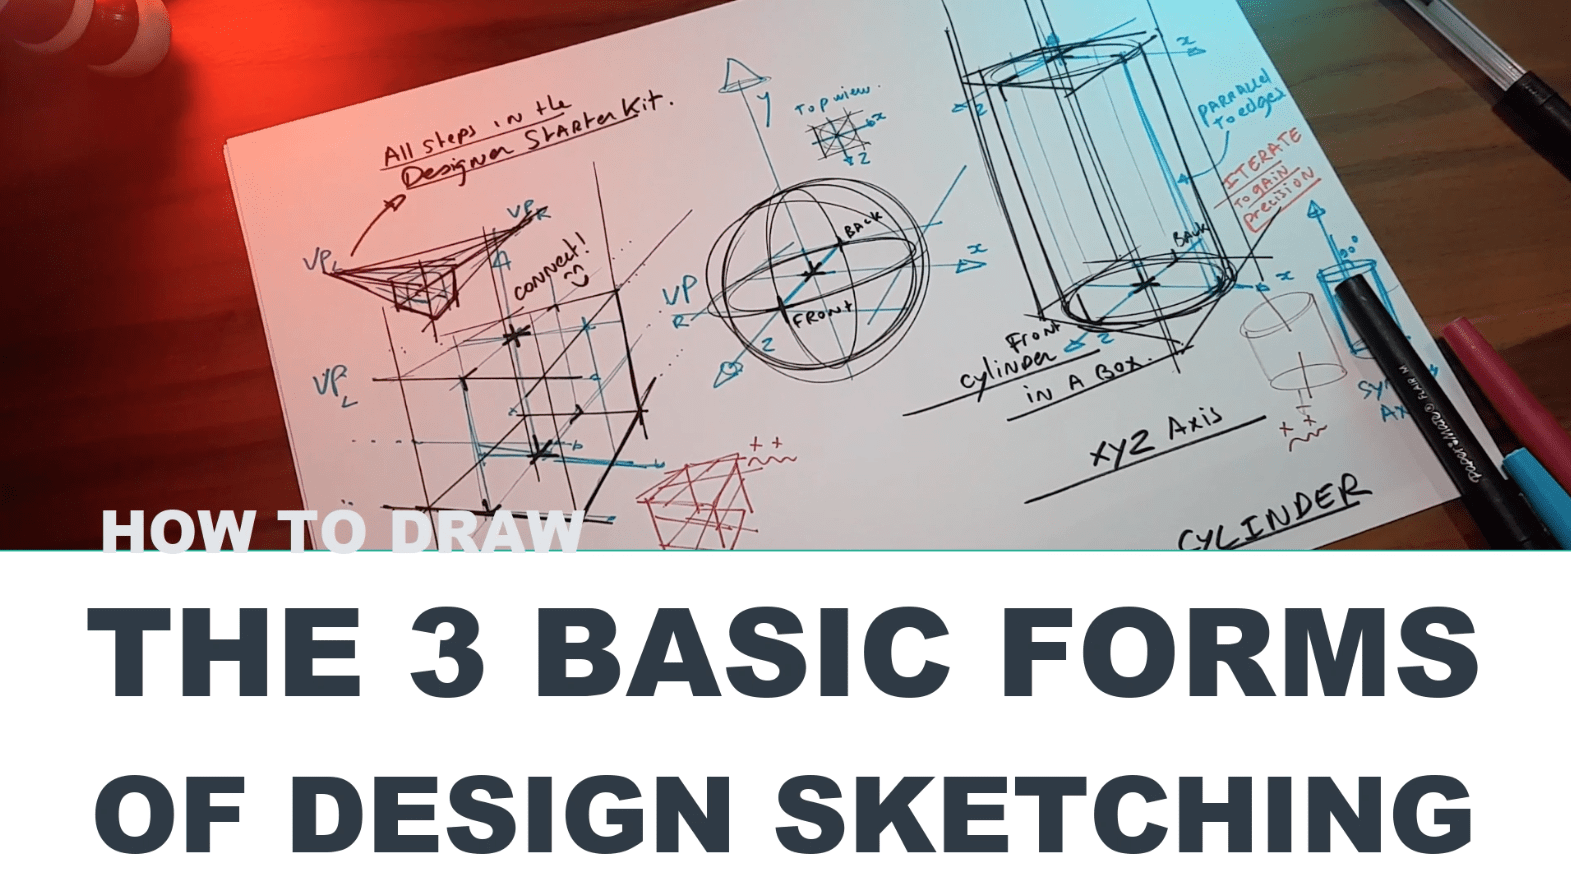 The 3 basic forms of Design Sketching